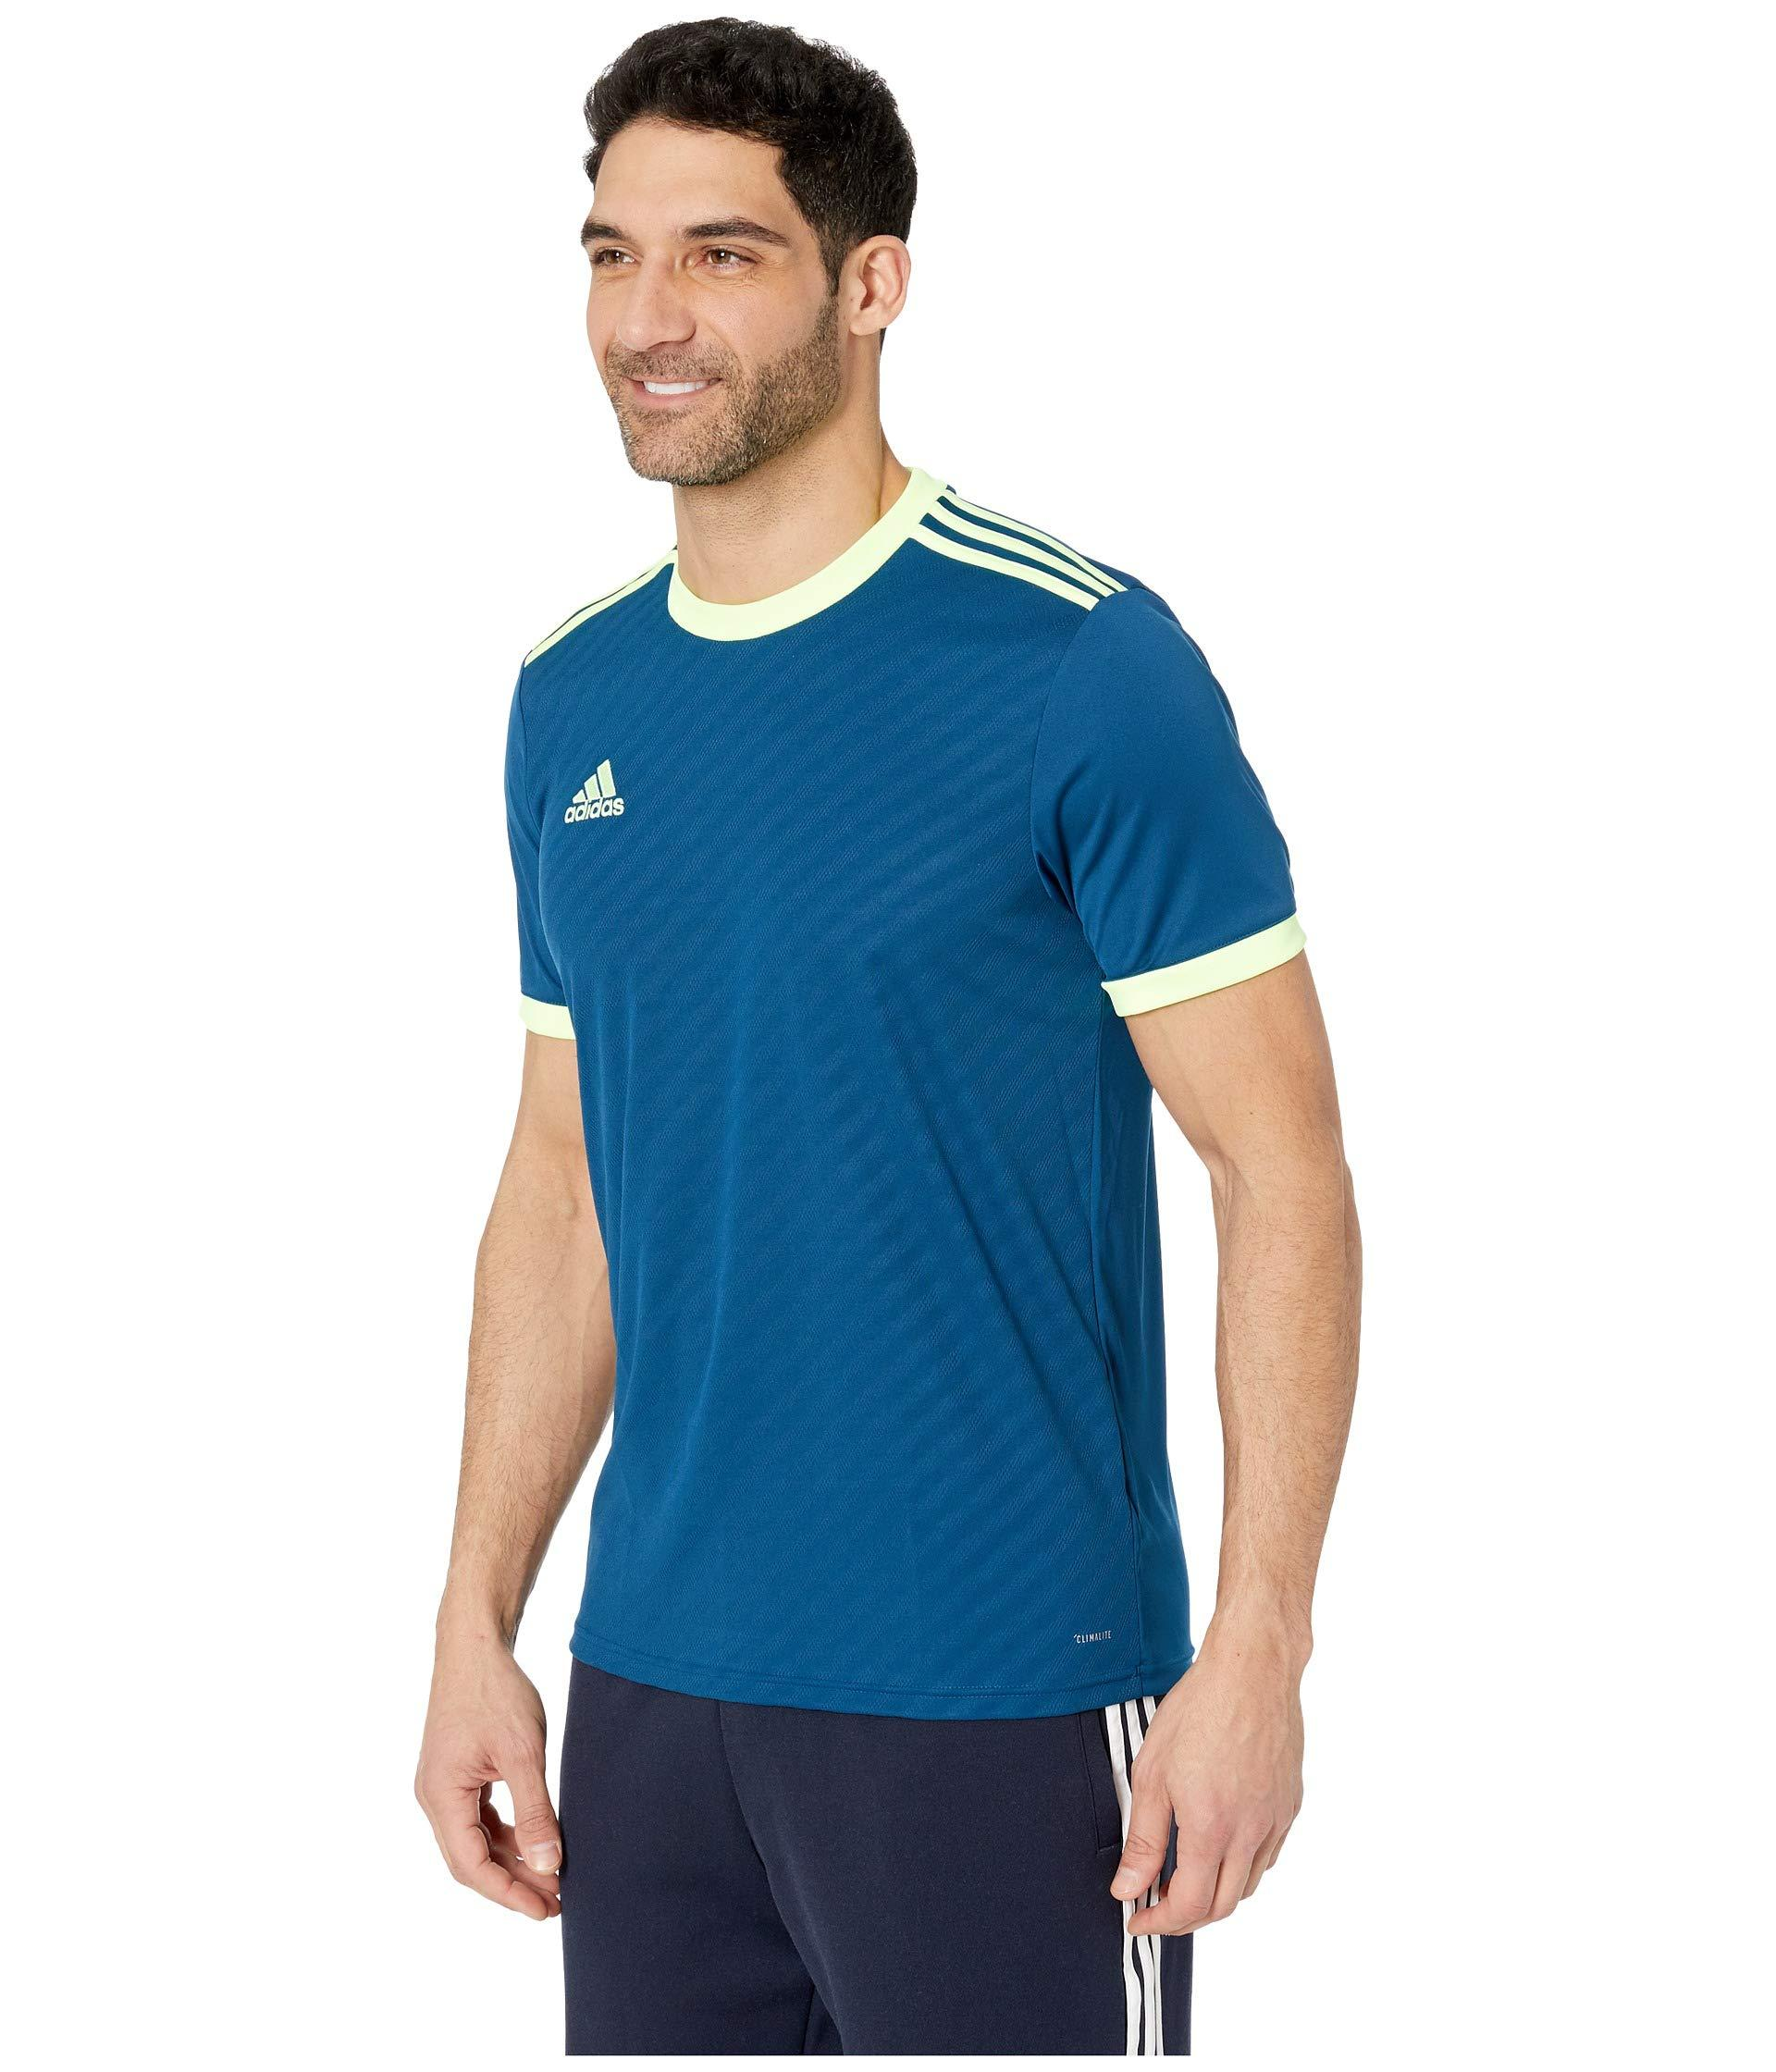 adidas Synthetic Afs Tiro Jersey in Blue for Men - Lyst